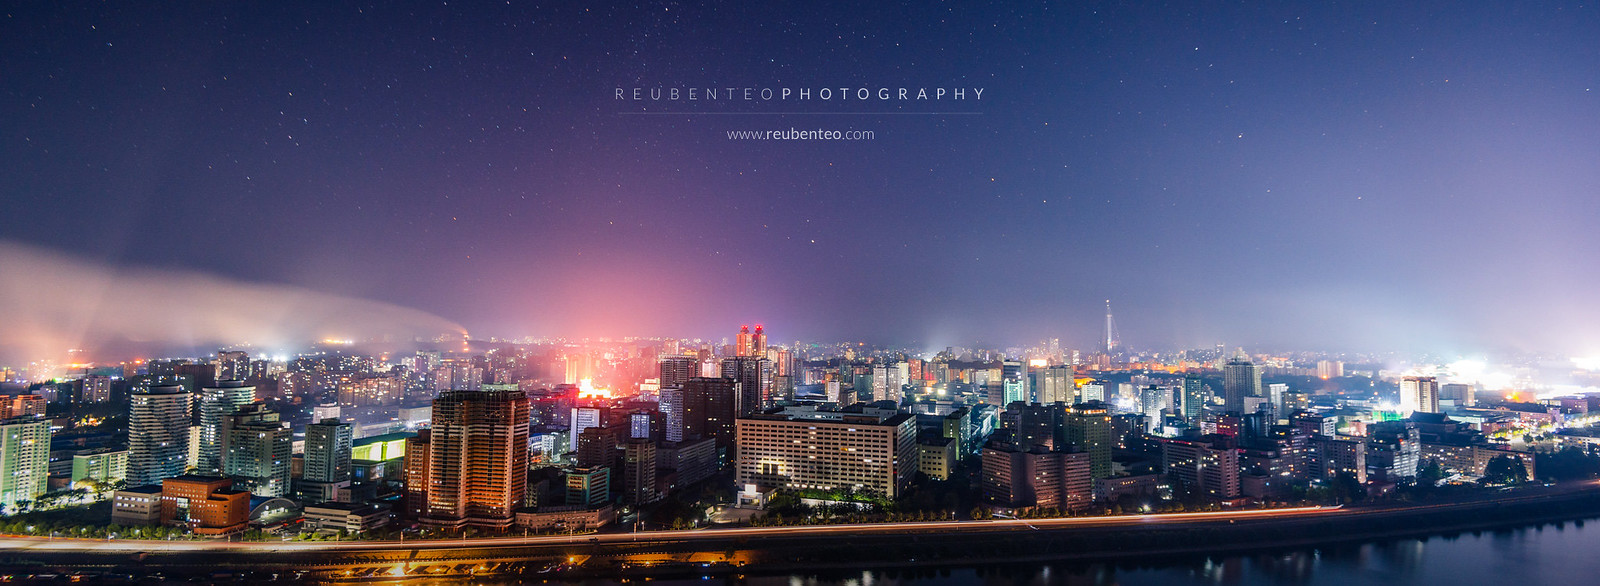 Night Sky and Stars in Pyongyang City